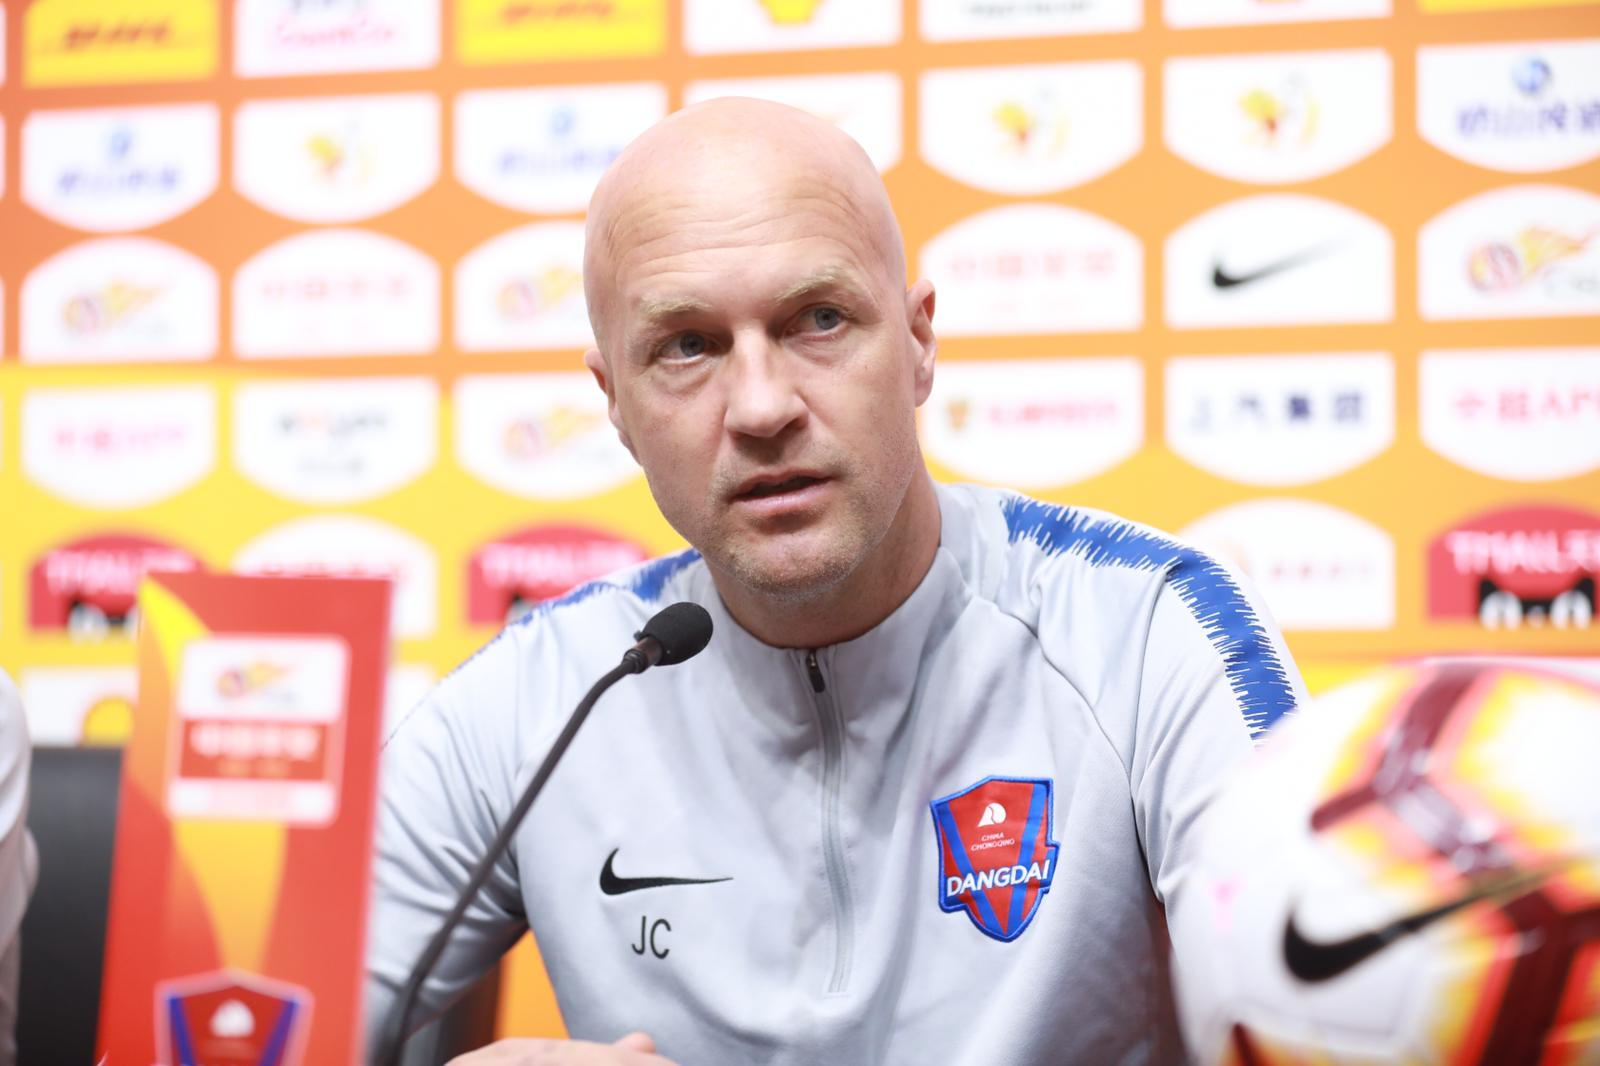 Jordi Cruyff discusses the challenges of being manager of Chinese Super League outfit Chongqing Dangdai Lifan with BBC